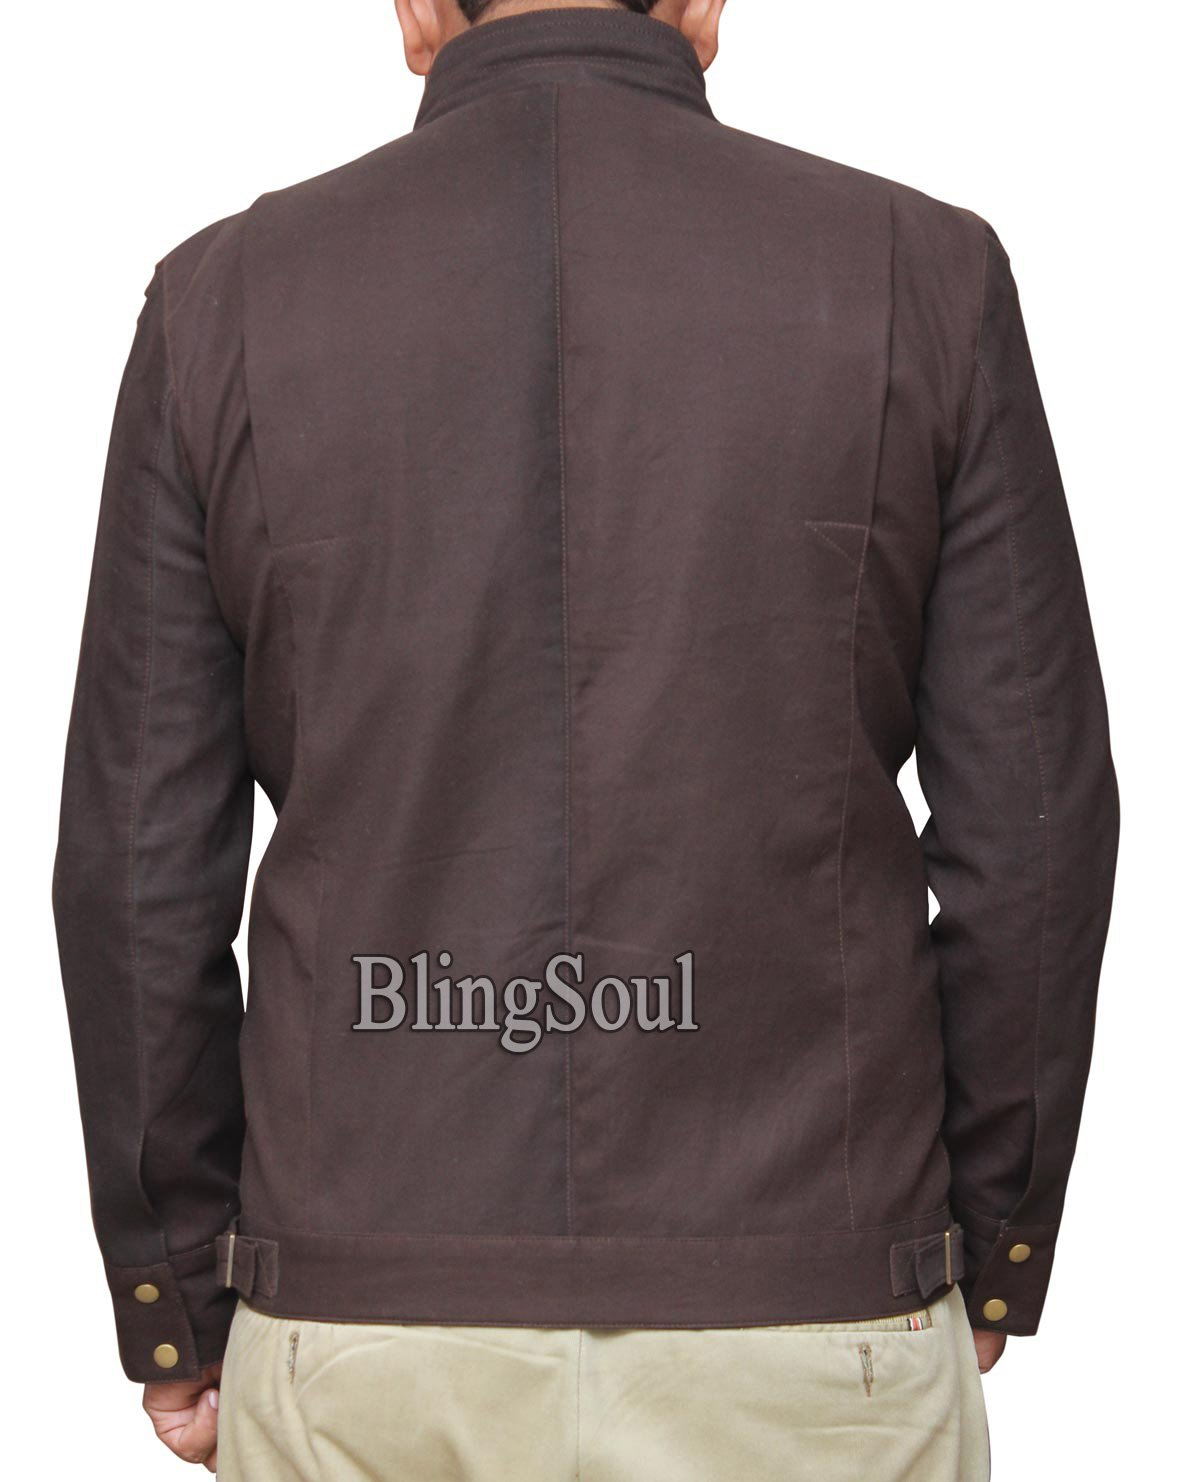 Star Wars Captain Cassian Andor Movie Jacket - Rogue One Diego Luna Brown Jacket Collection (L, Brown) by BlingSoul (Image #3)